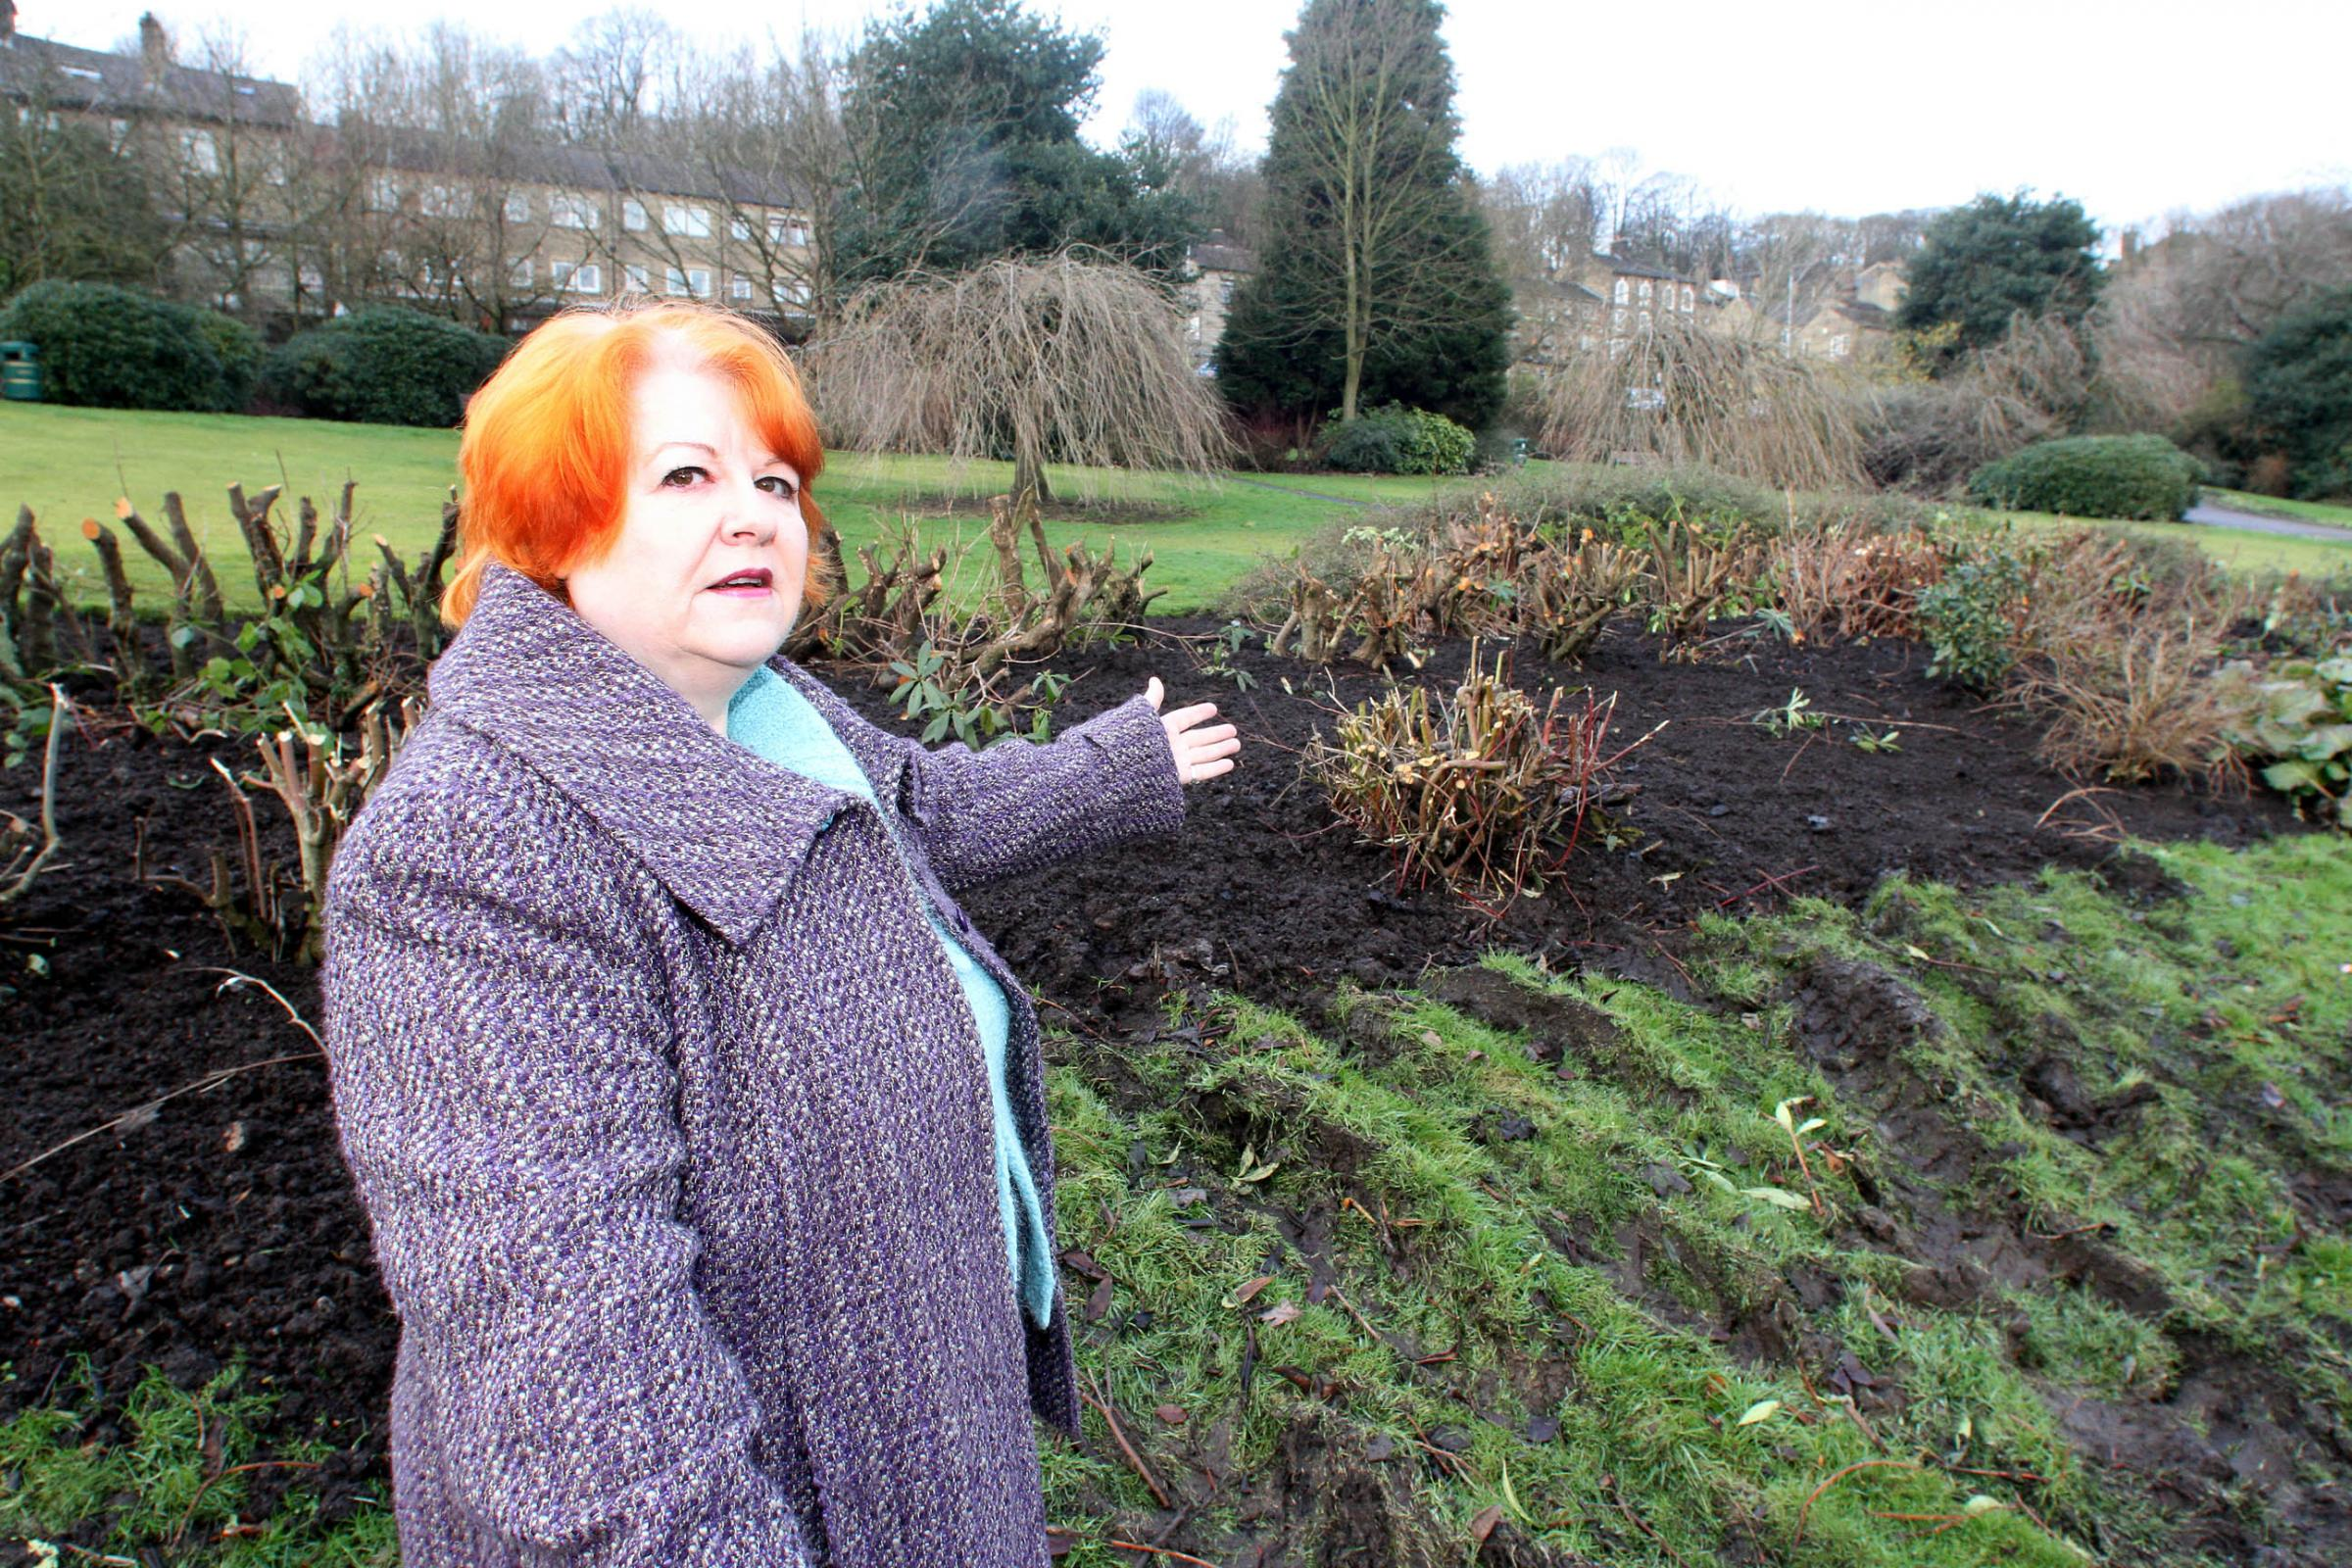 Councillor Angel Kershaw is angry shrubs in the village's Central Park have been so severely pruned ahead of the Tour visit